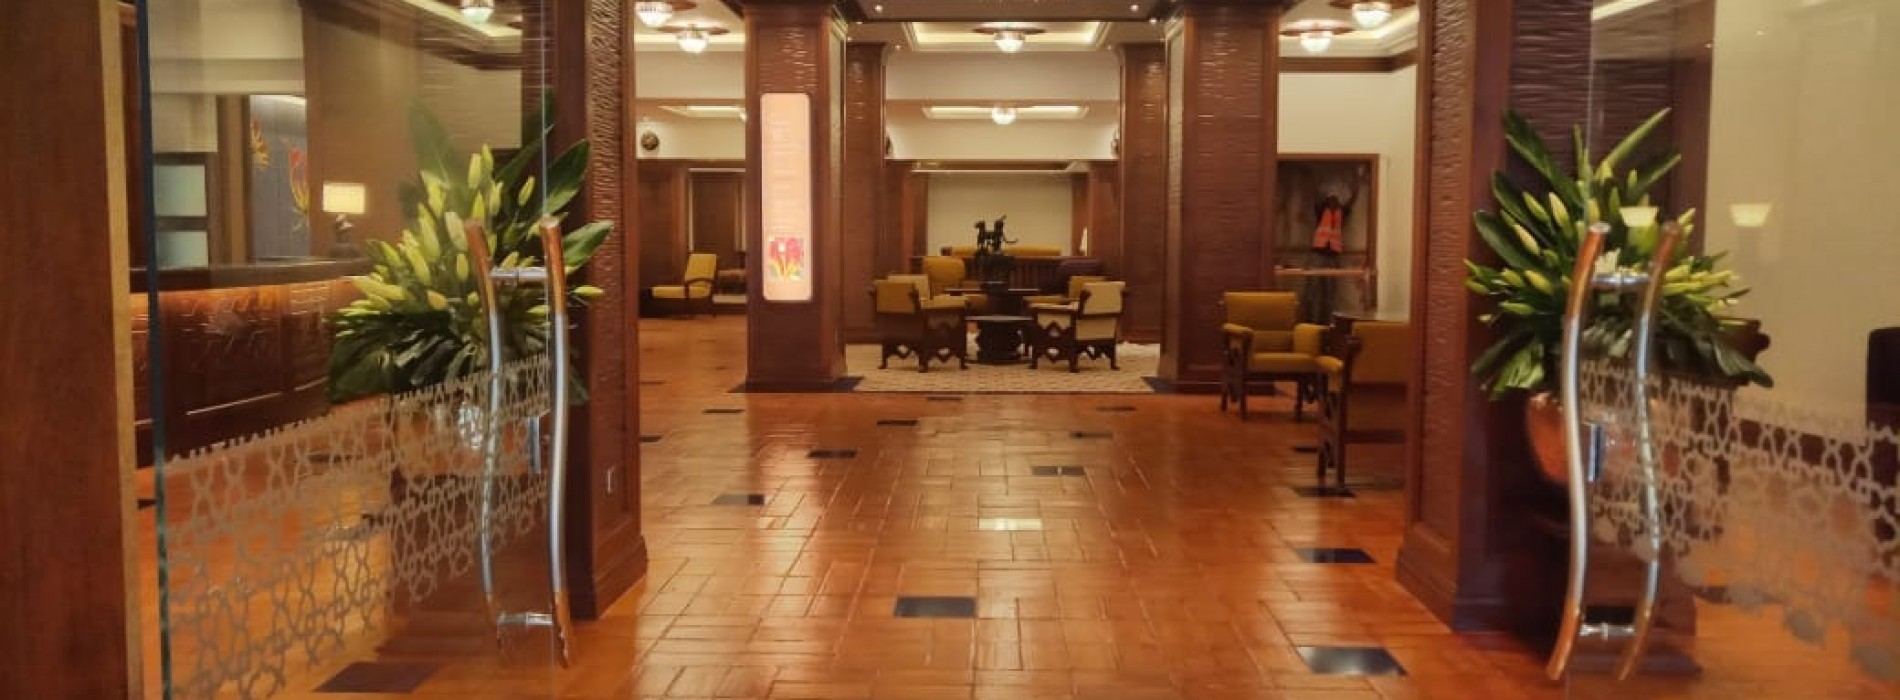 The Nairobi Serena Hotel to reopen on Sept 1 after refurbishment